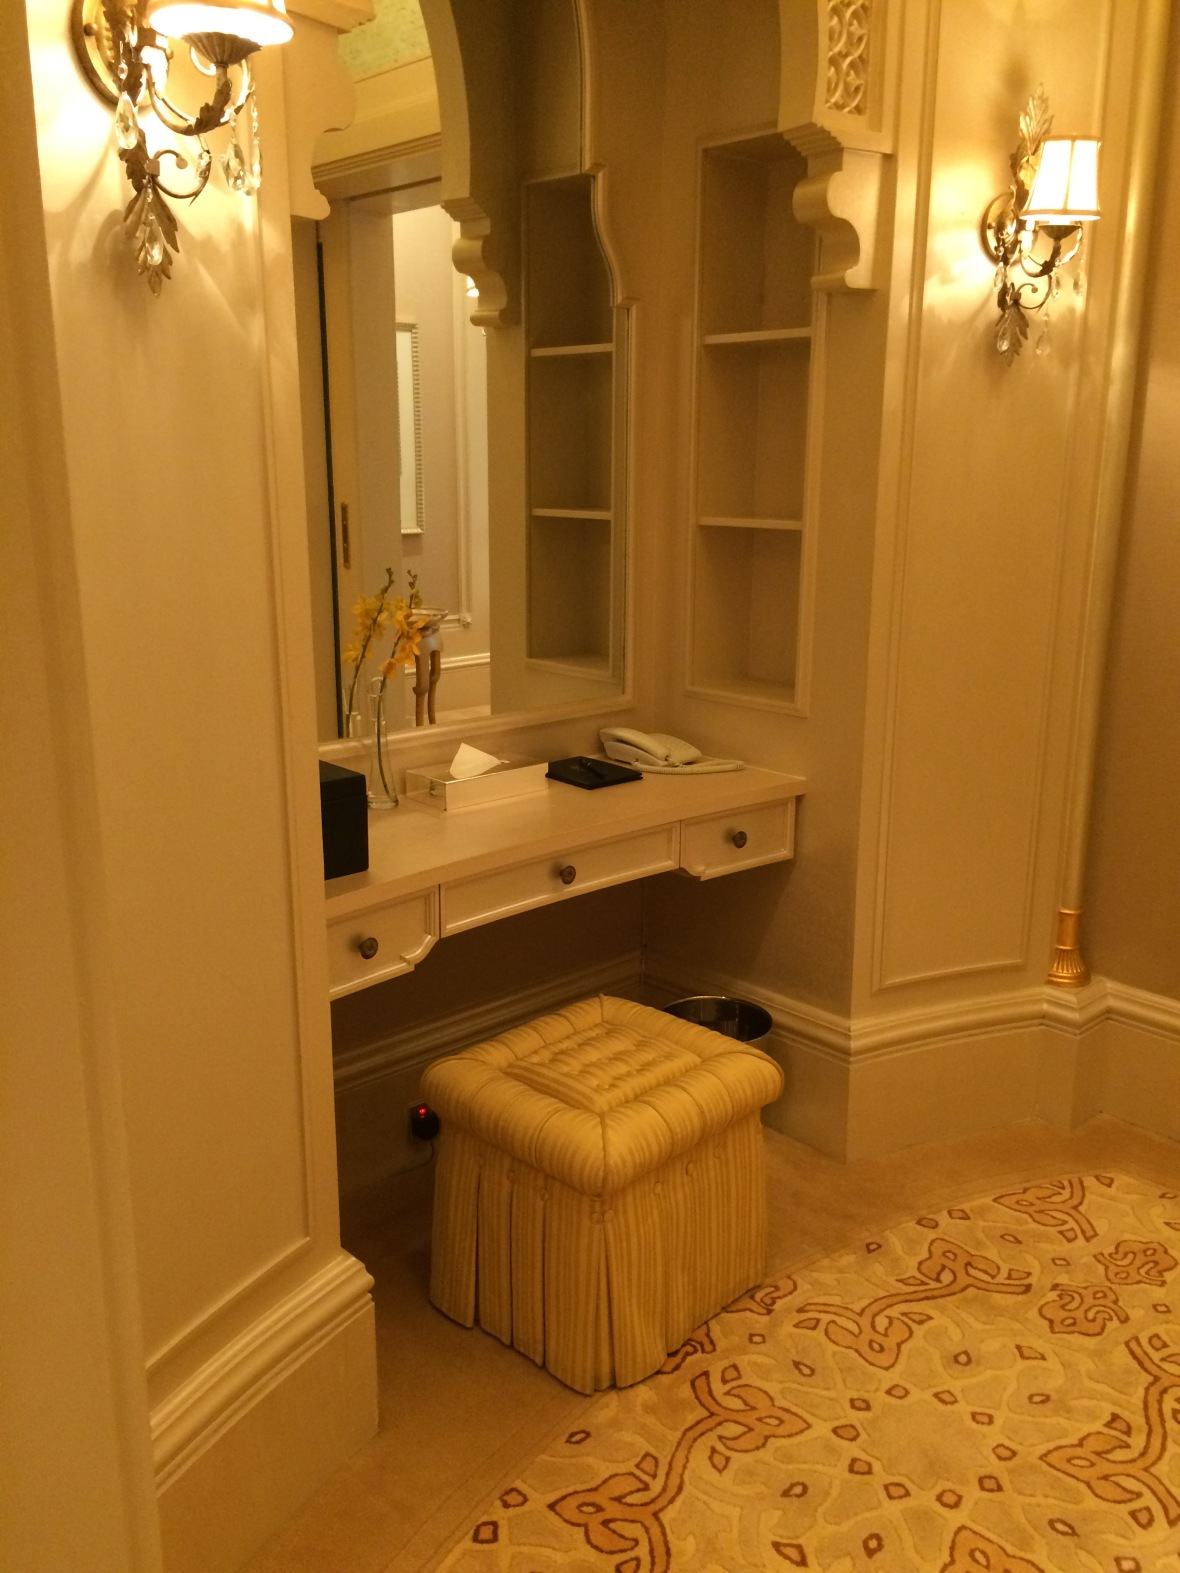 Dressing Table, Emirates Palace Hotel, Abu Dhabi, UAE